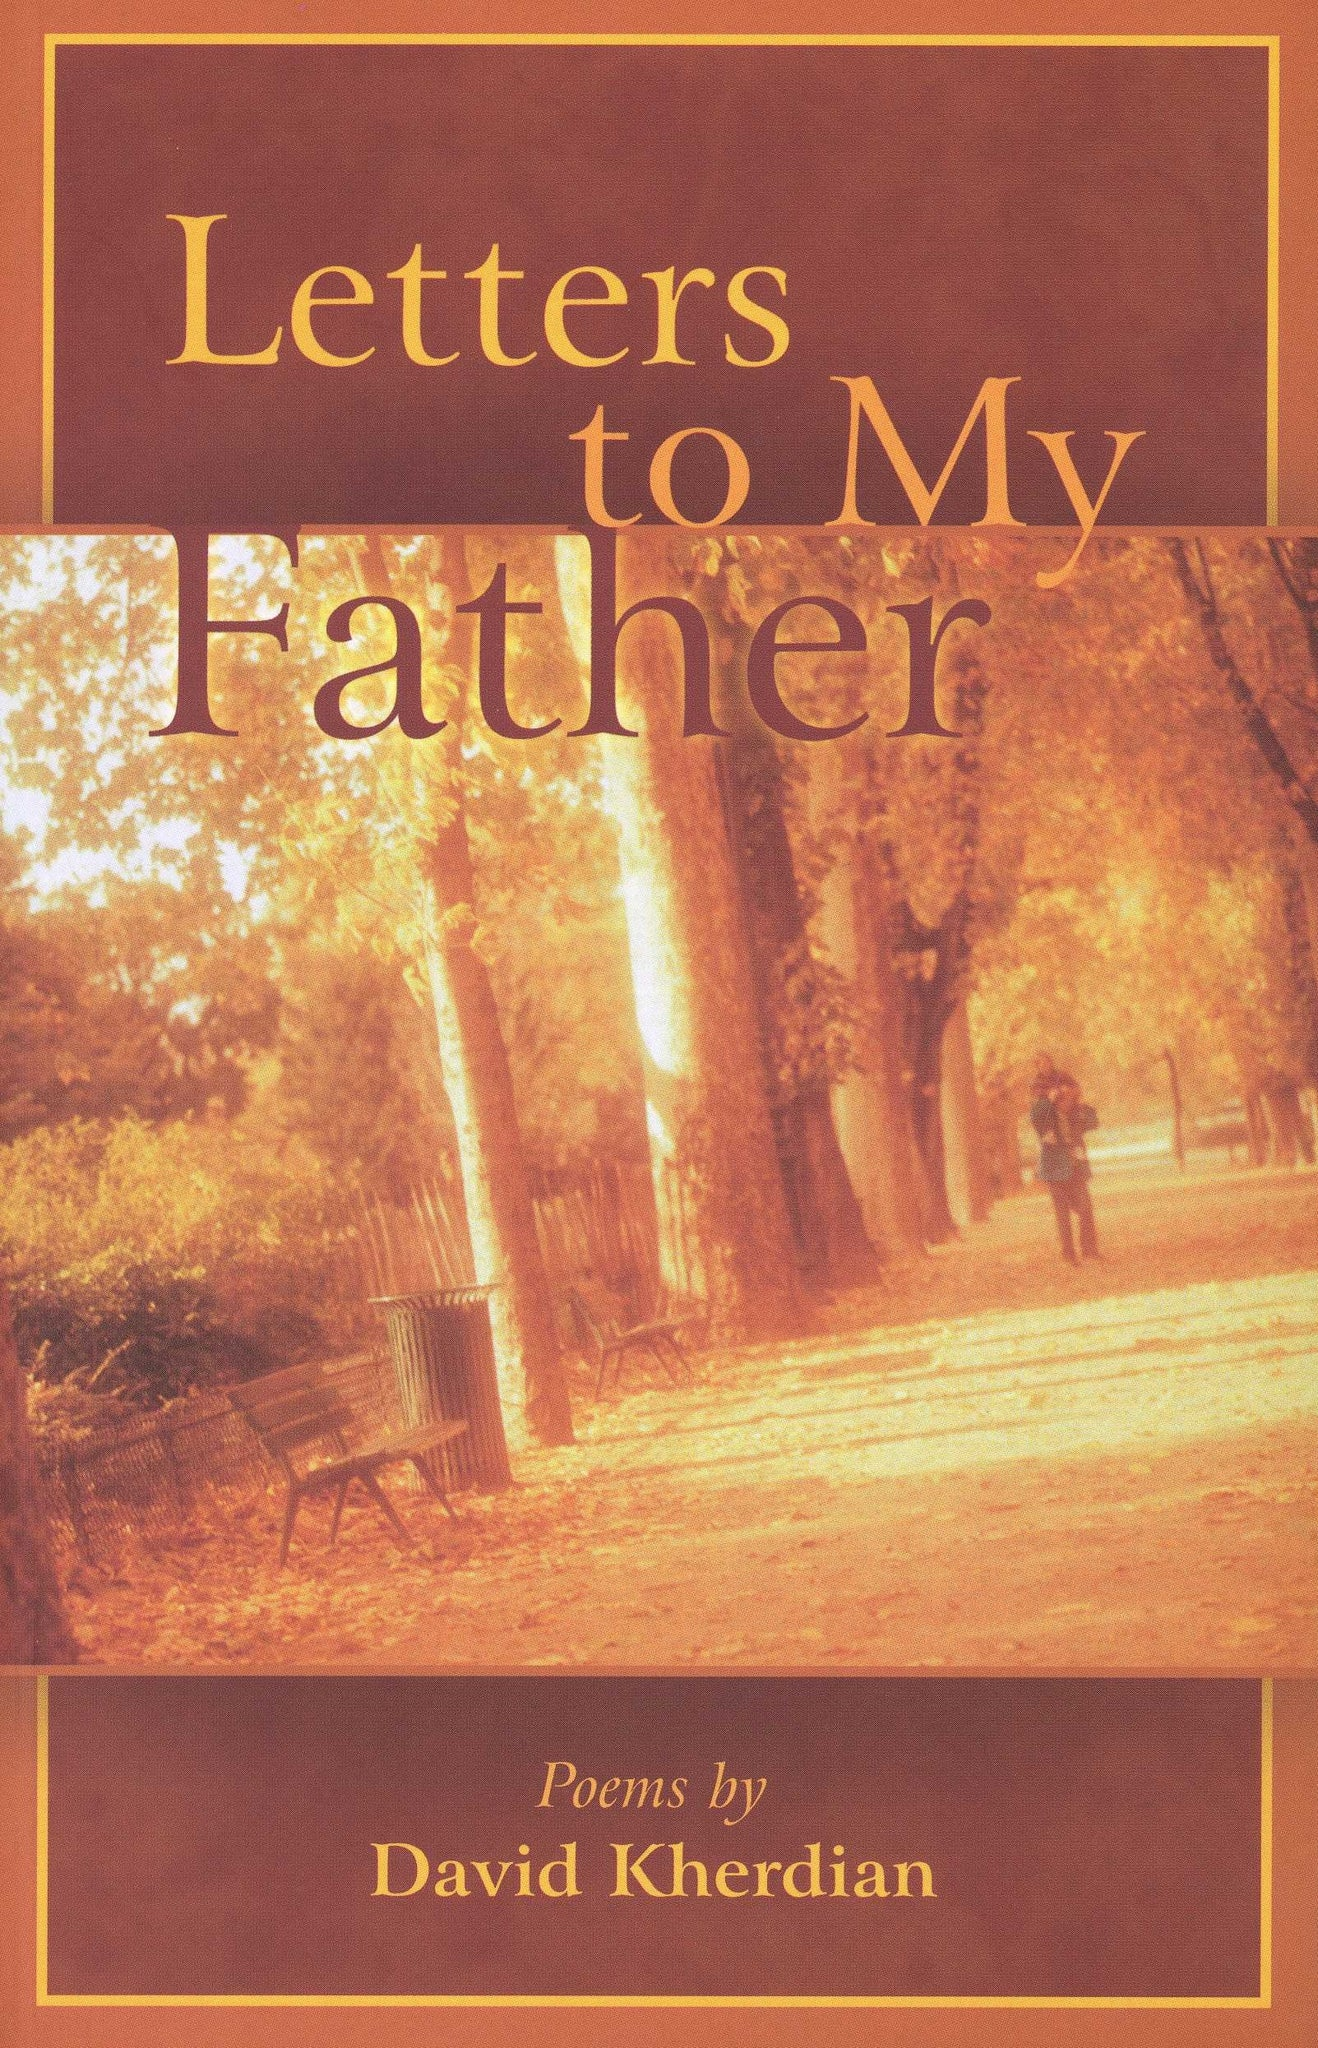 LETTERS TO MY FATHER: Poems